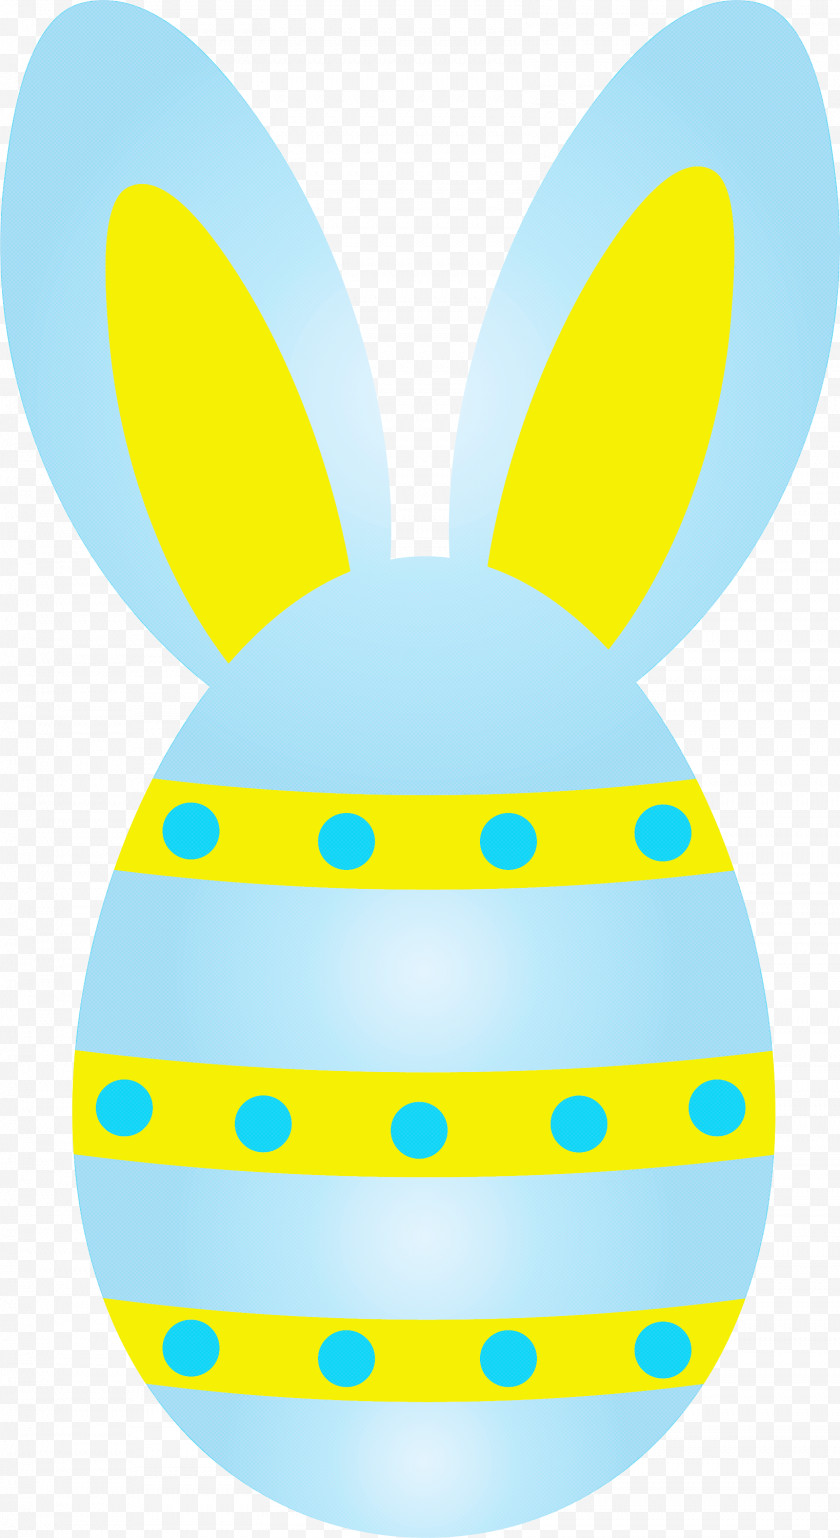 Easter Egg With Bunny Ears Free PNG